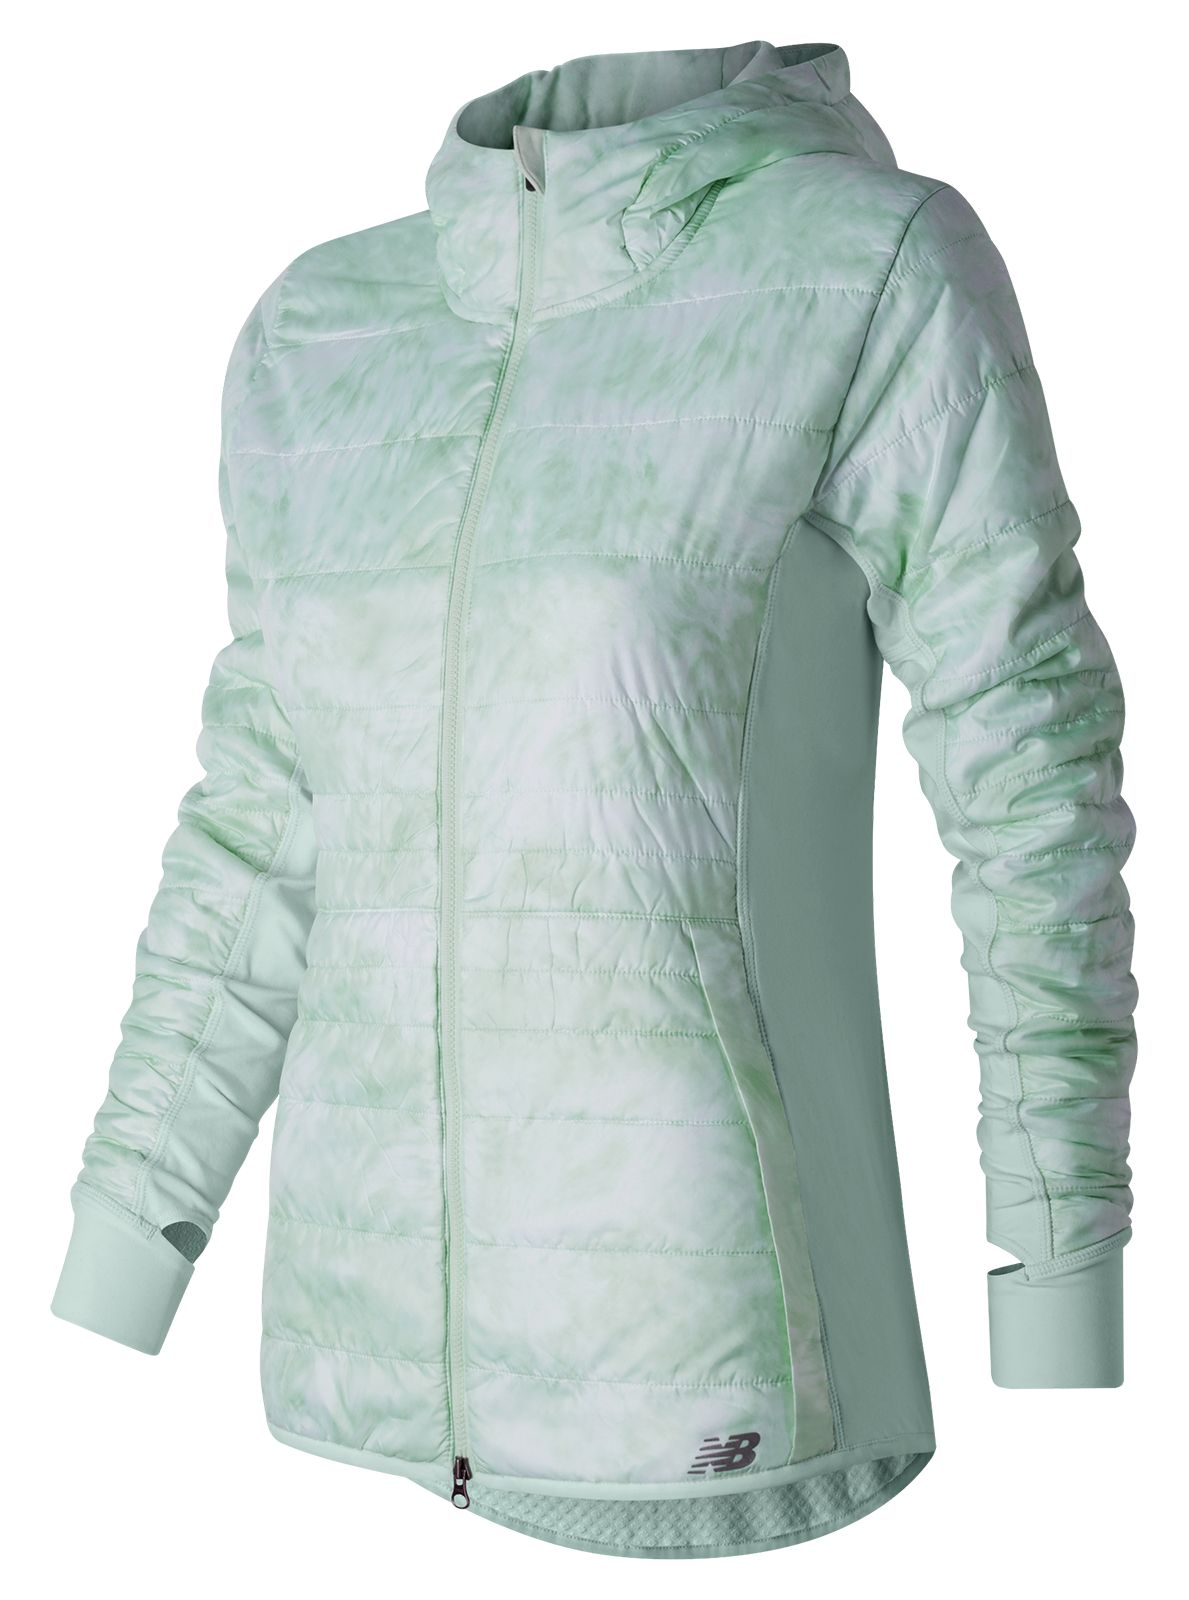 New Balance : NB Heat Hybrid Jacket : Women's Apparel : WJ63120DFP